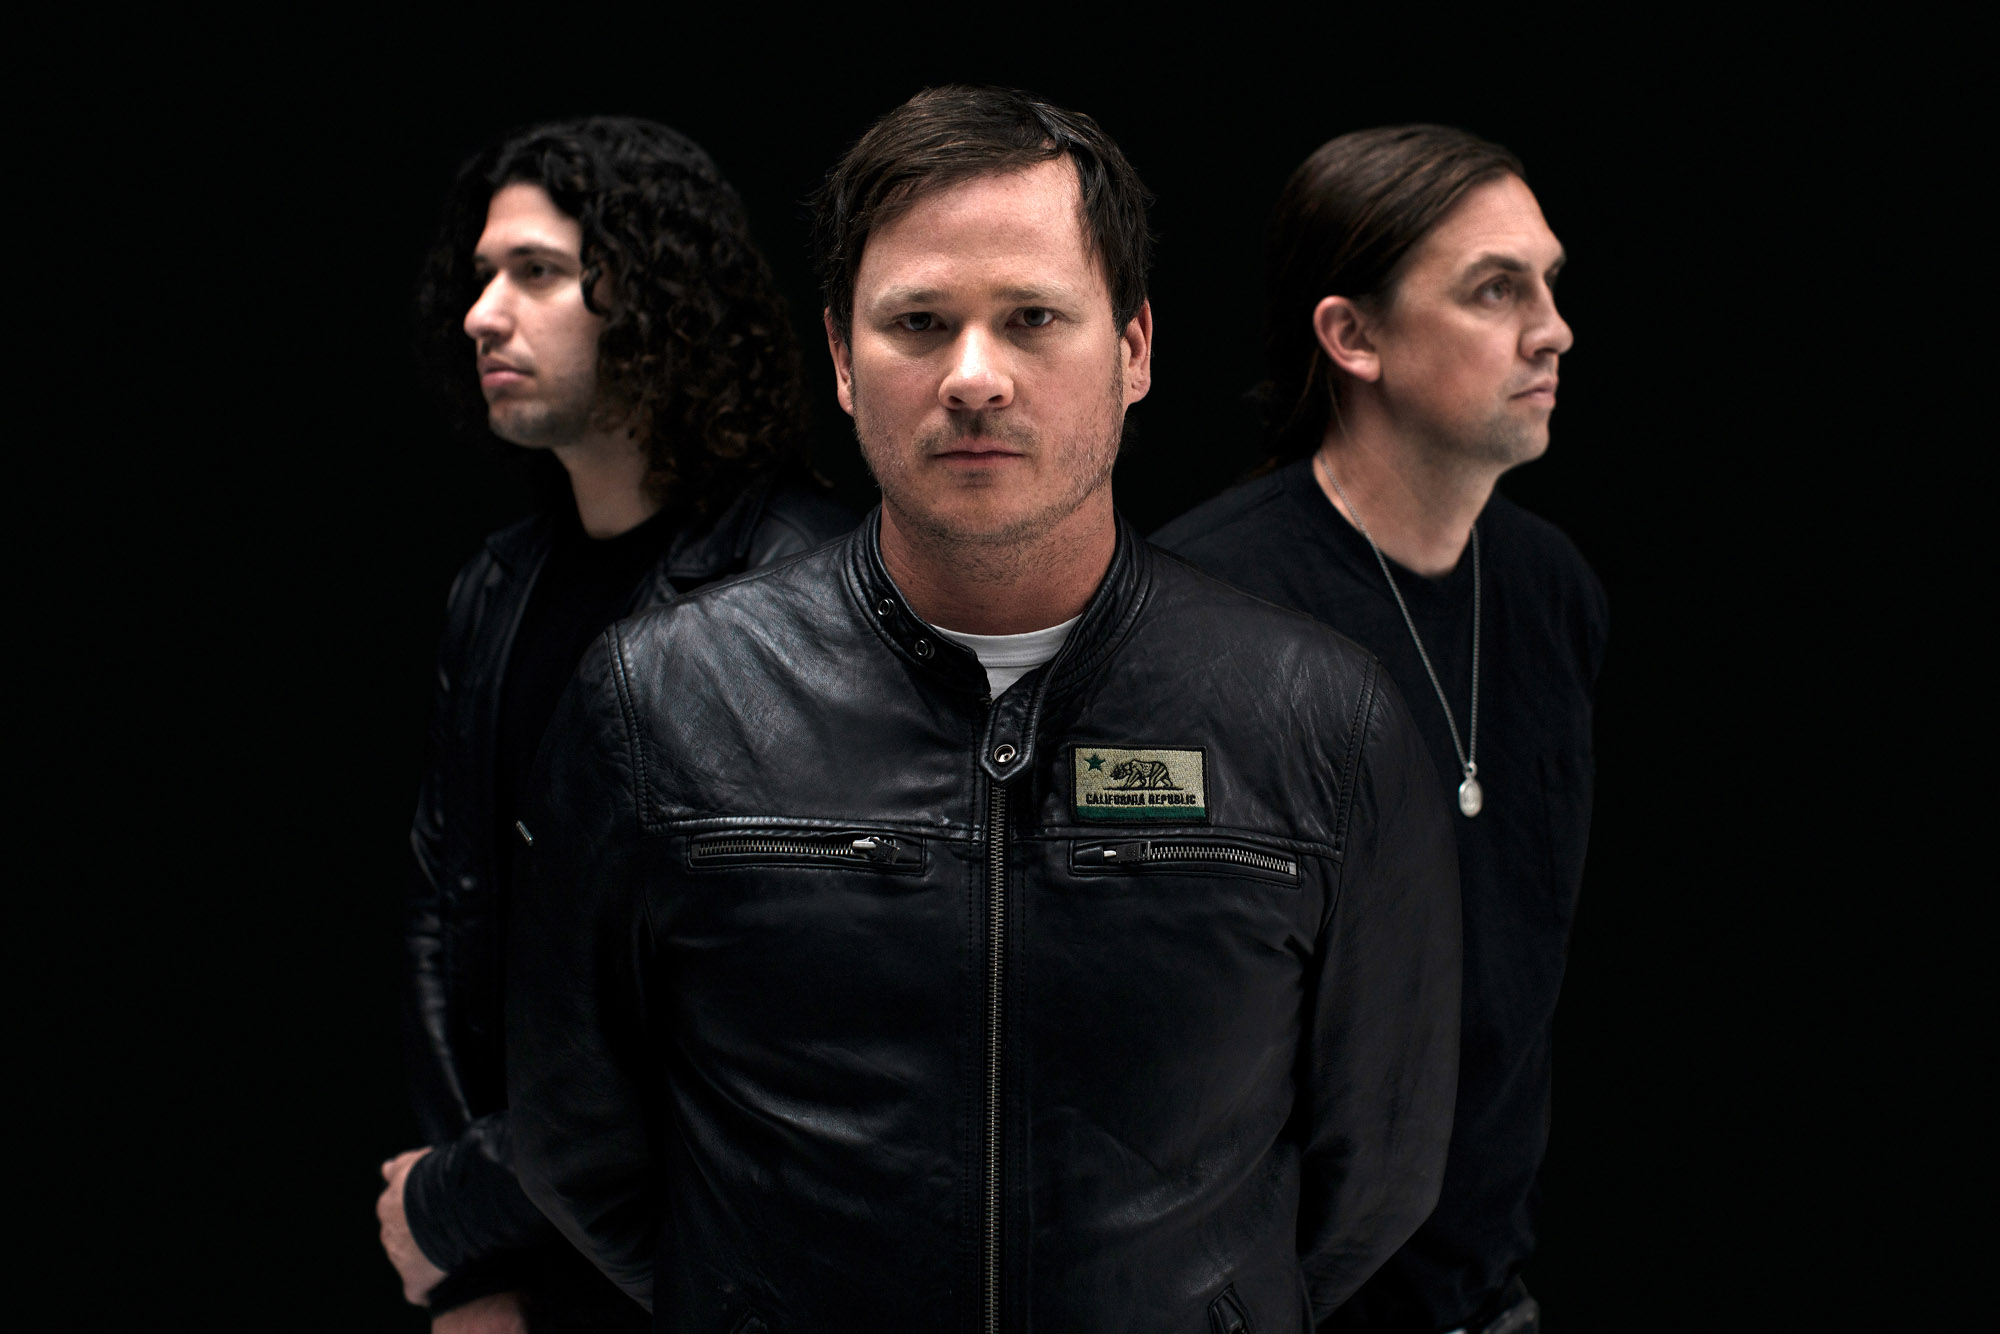 """ANGELS & AIRWAVES RELEASE MUSIC VIDEO FOR """"ALL THAT'S LEFT IS LOVE"""""""